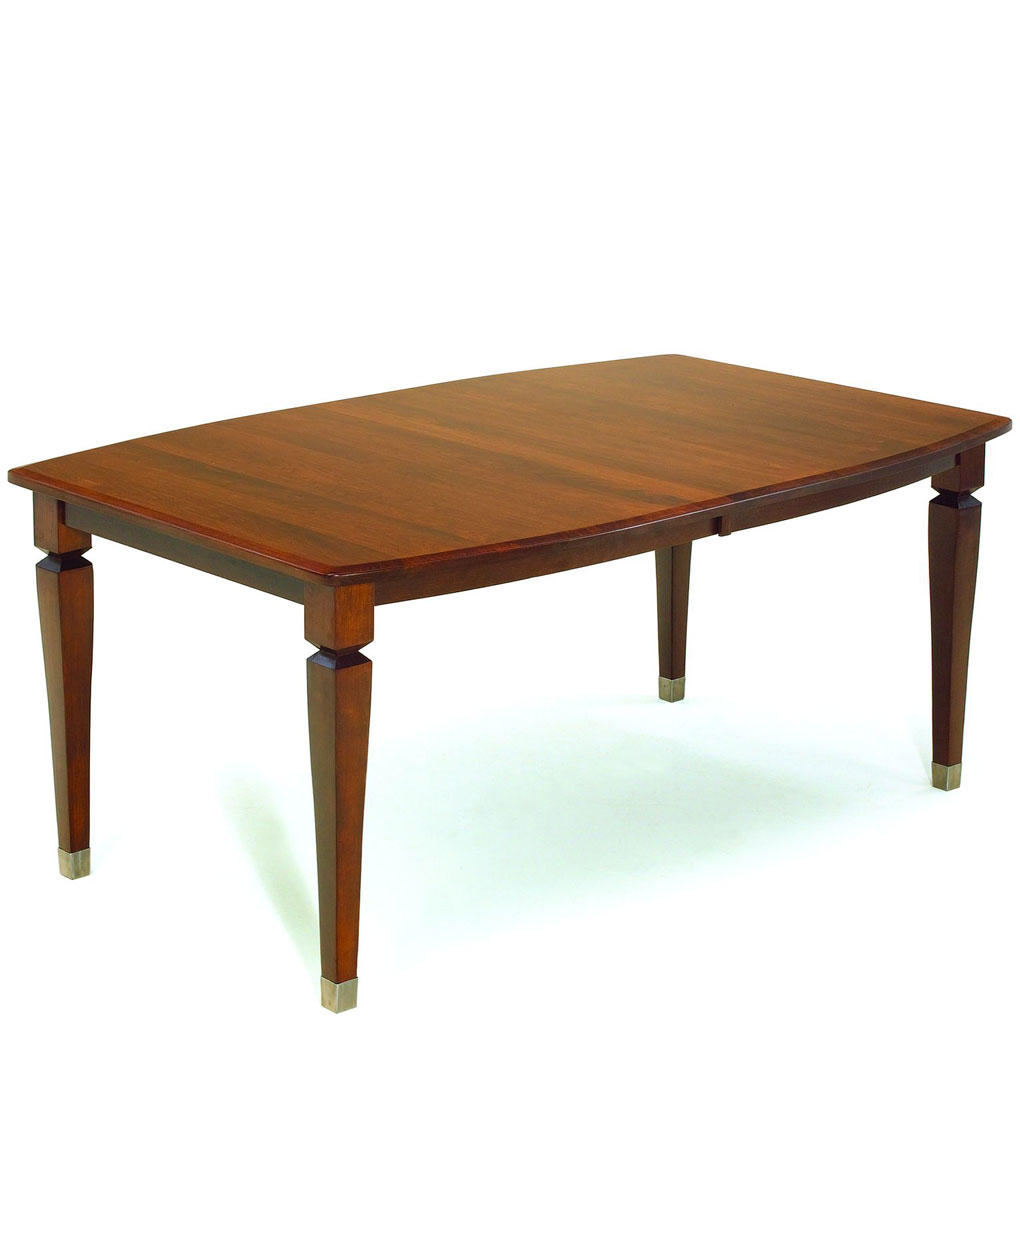 Lexington cherry dining room set used dining table and for Cherry dining room table